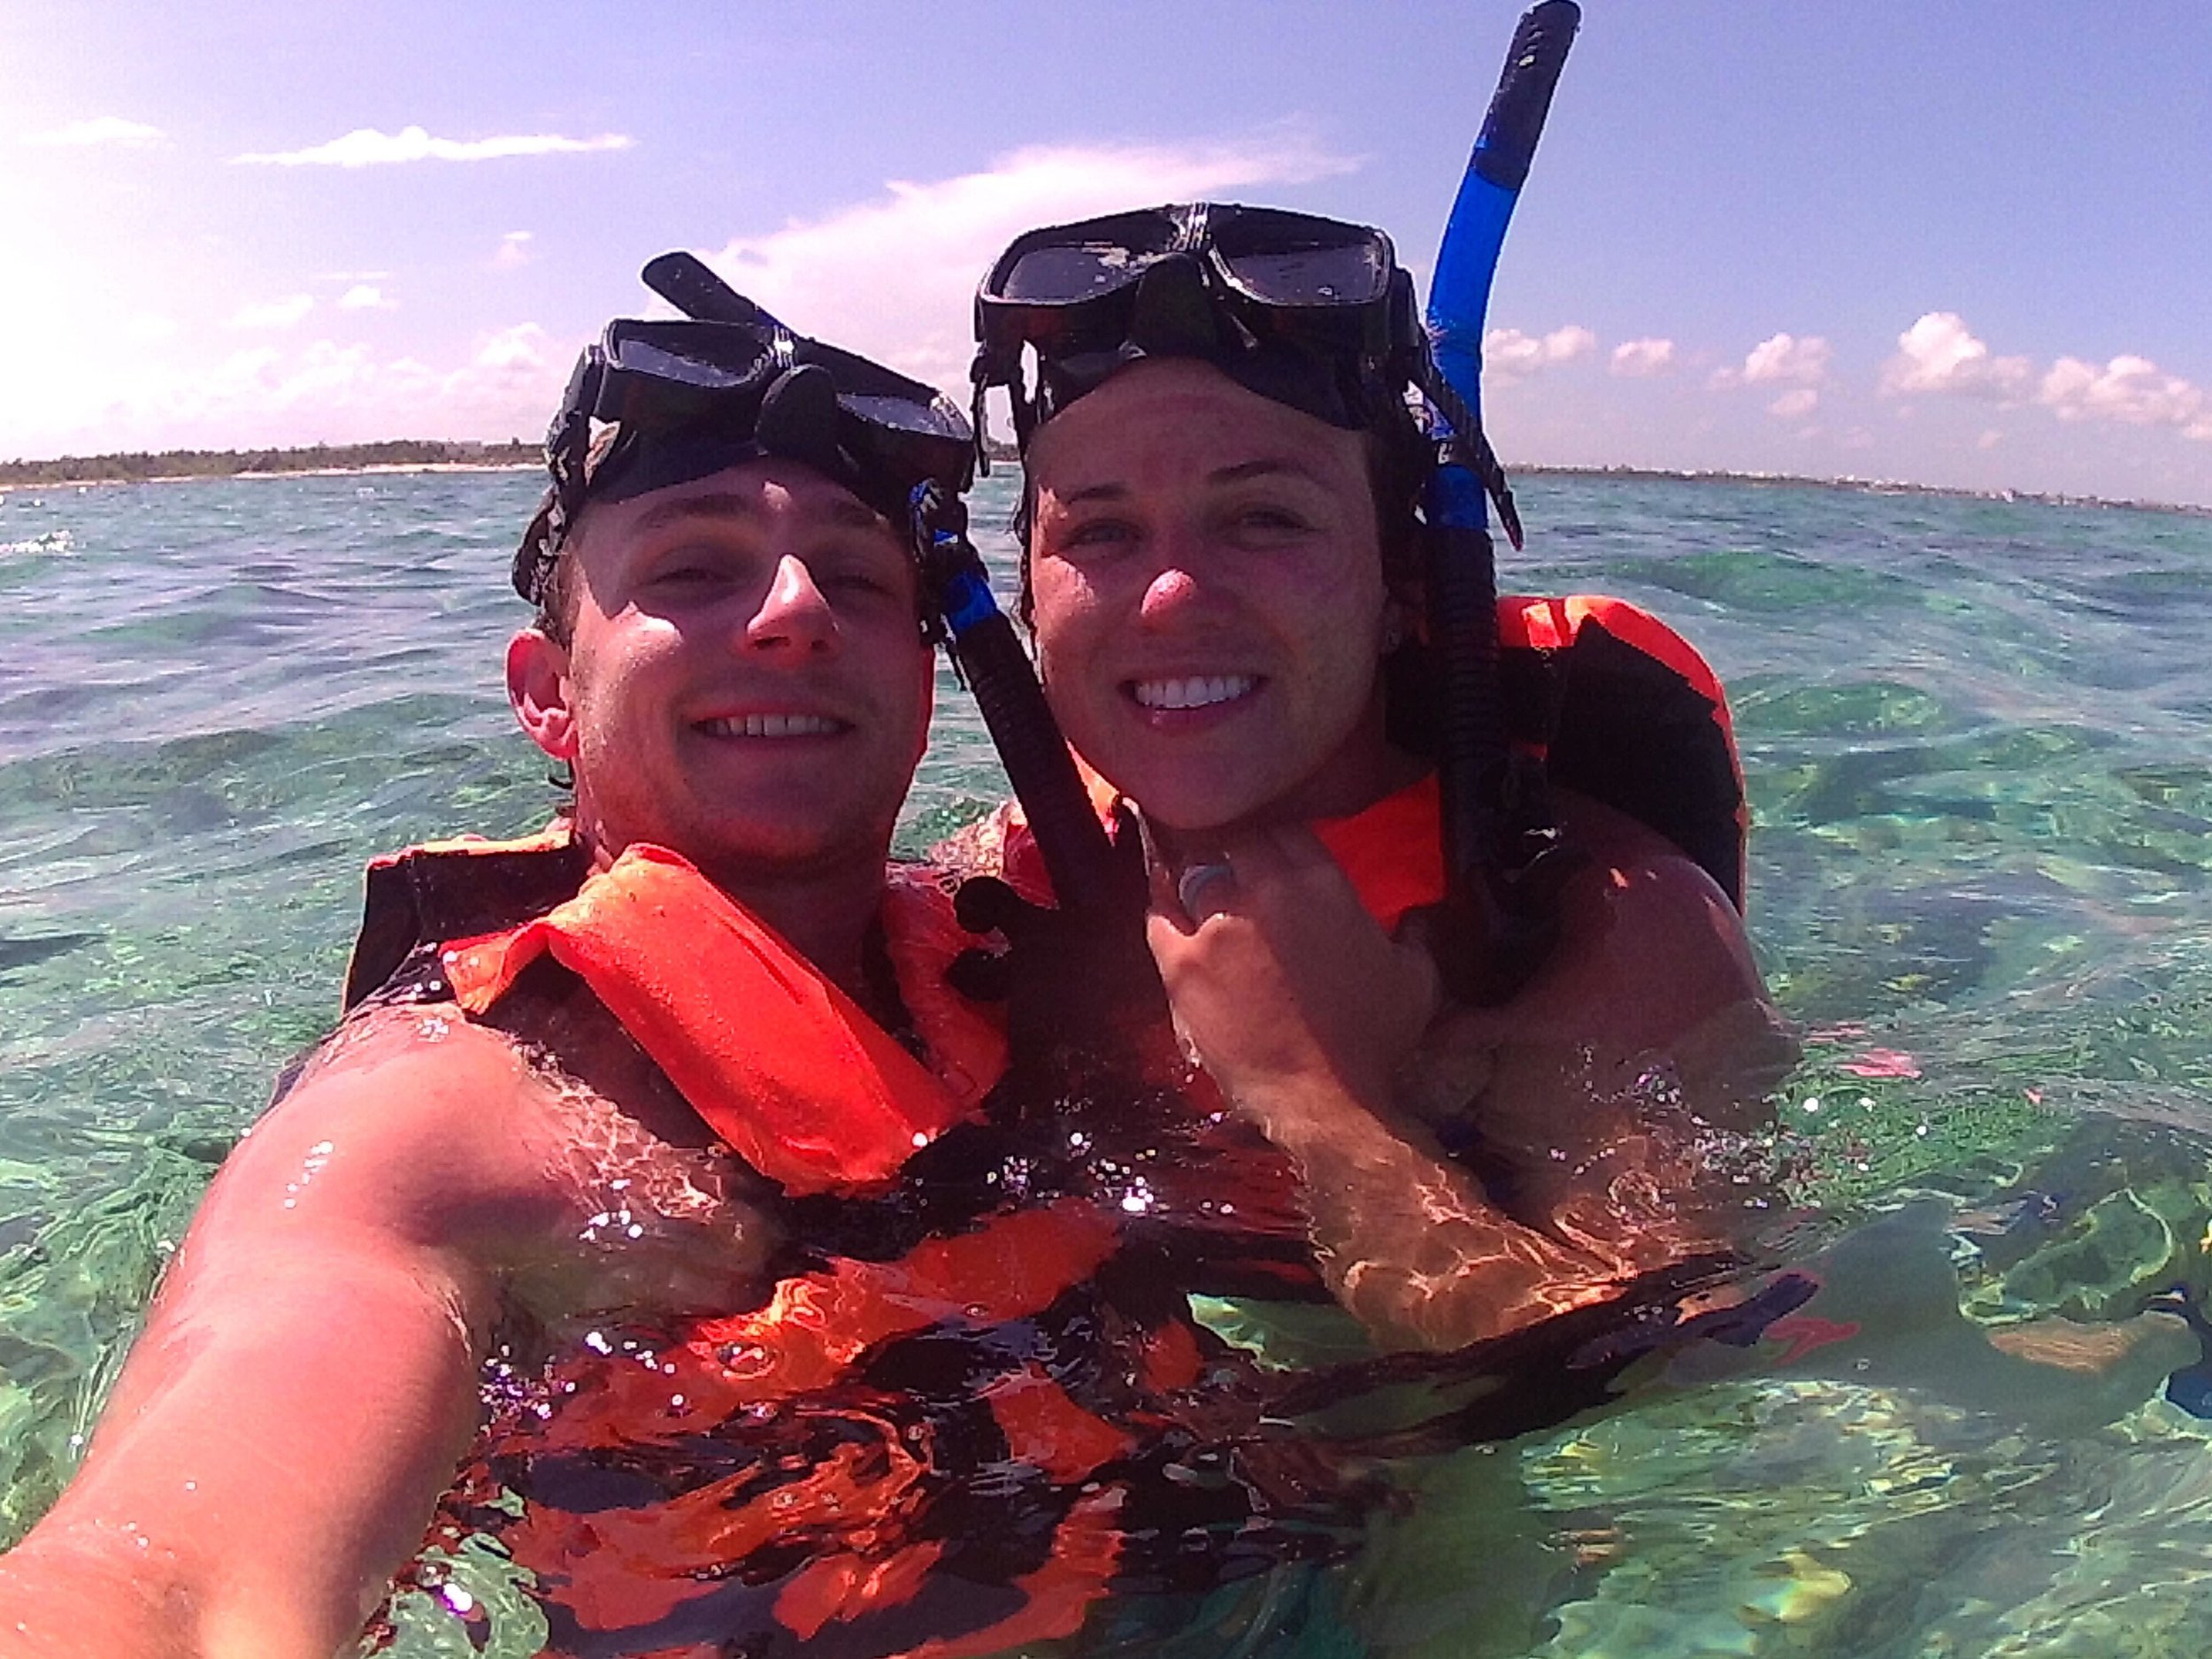 On our last day we went on a snorkeling trup and it was a blast! We saw a ton and enjoyed being out on the water!